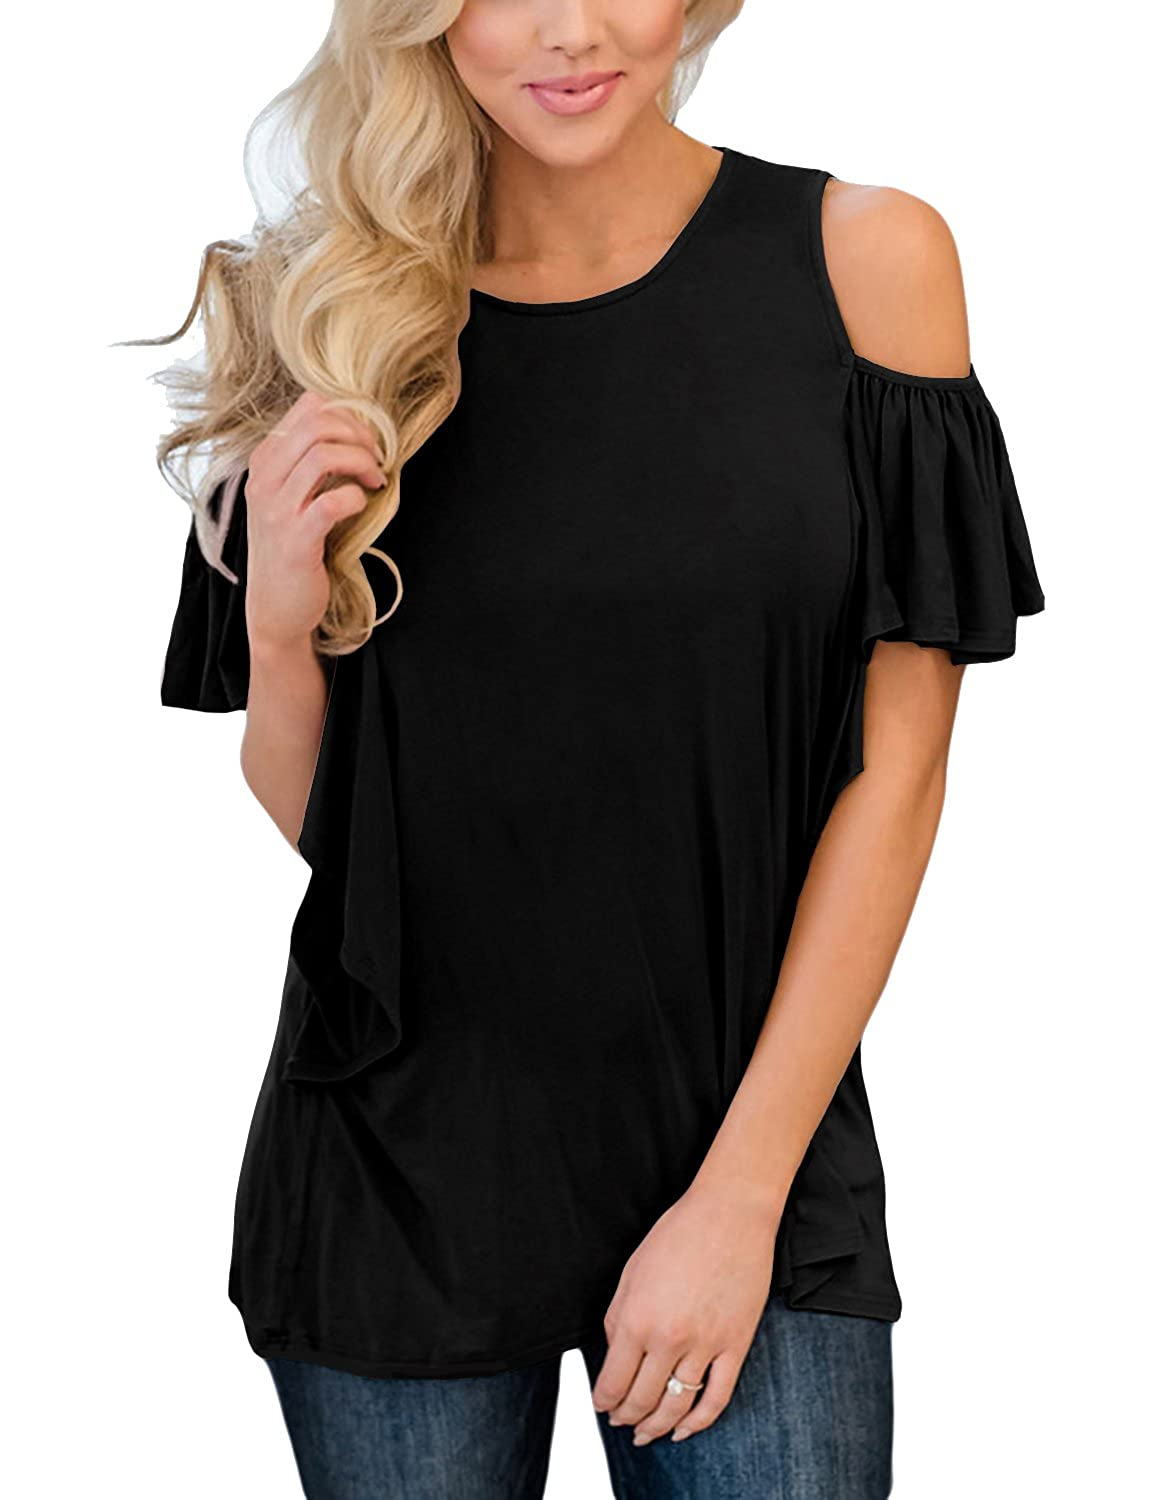 999be67132ab2 Top 10 wholesale Cold Shoulder Ruffle Top - Chinabrands.com